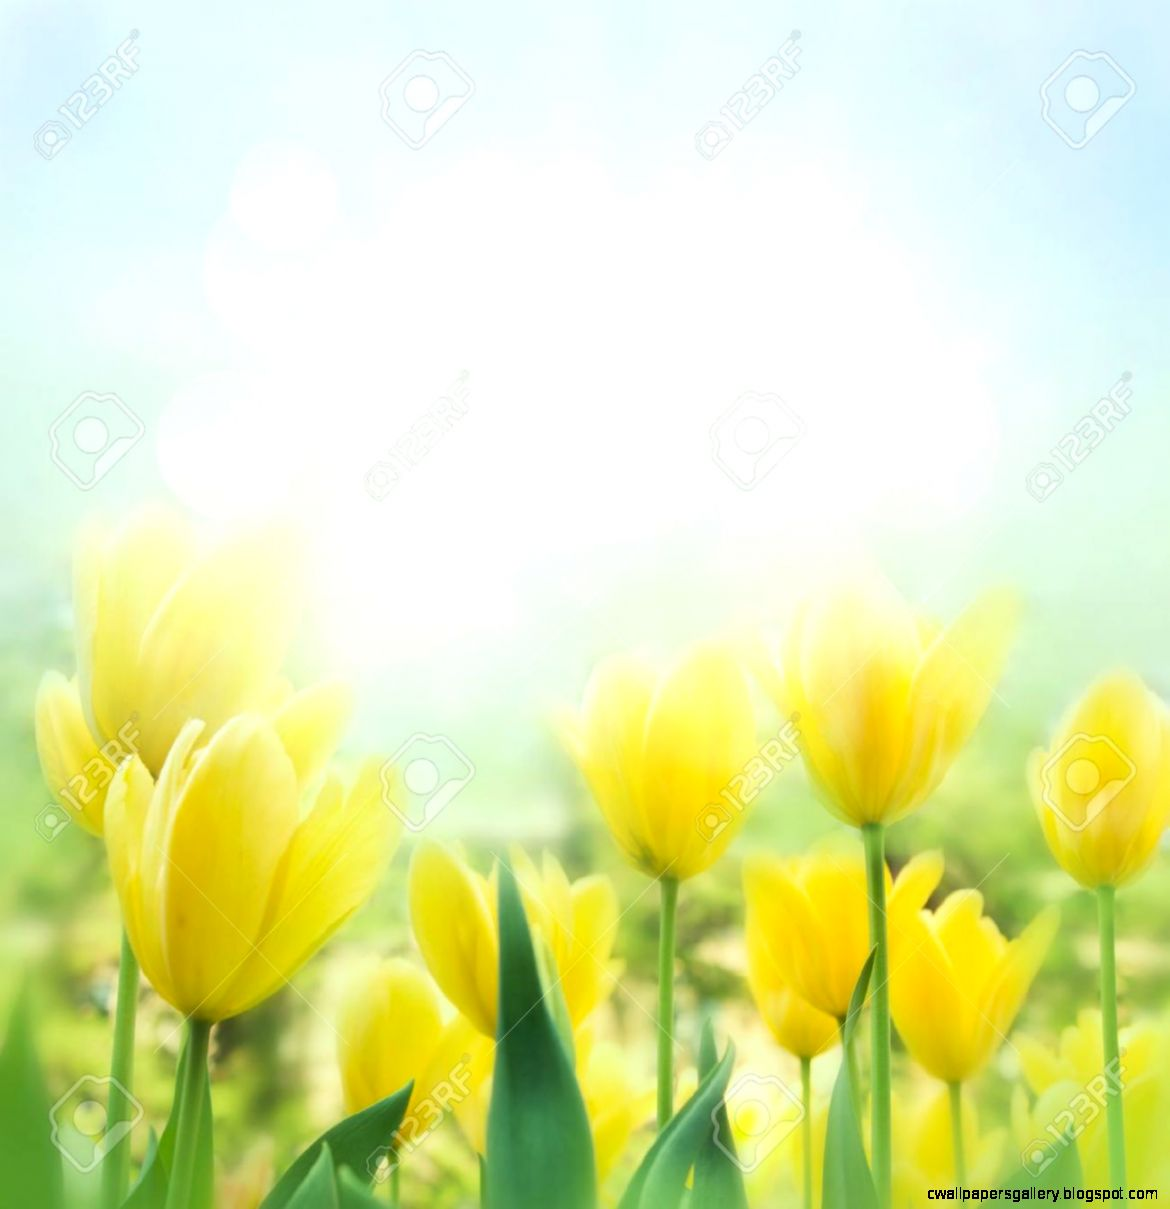 Spring Background With Beautiful Yellow Tulips Stock Photo